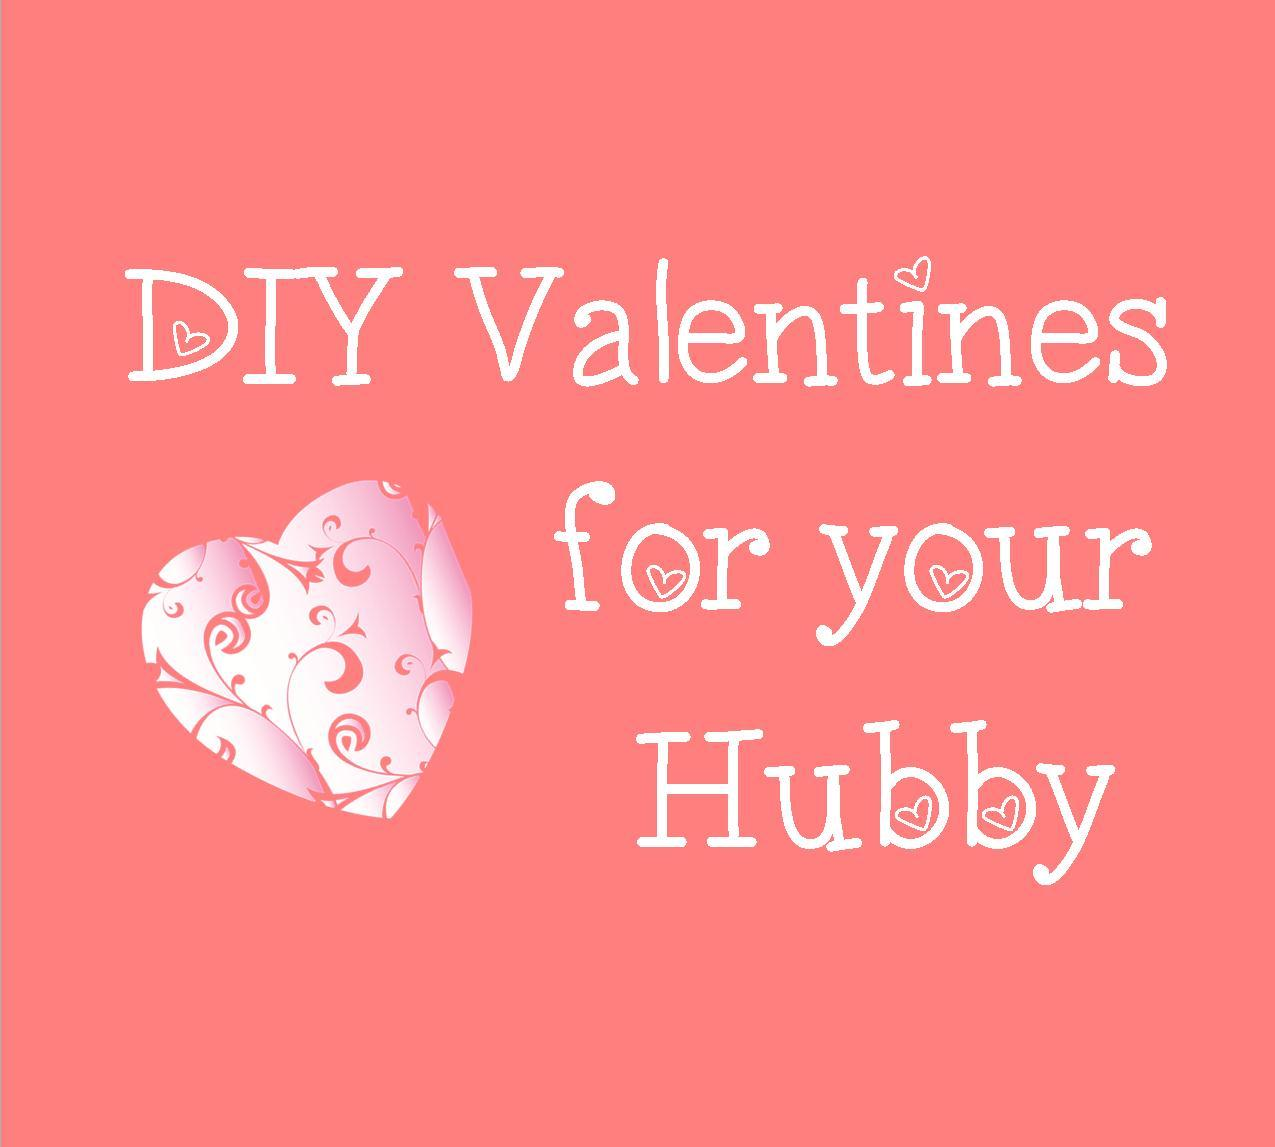 Valentine Day Gifts For Husband Pinterest